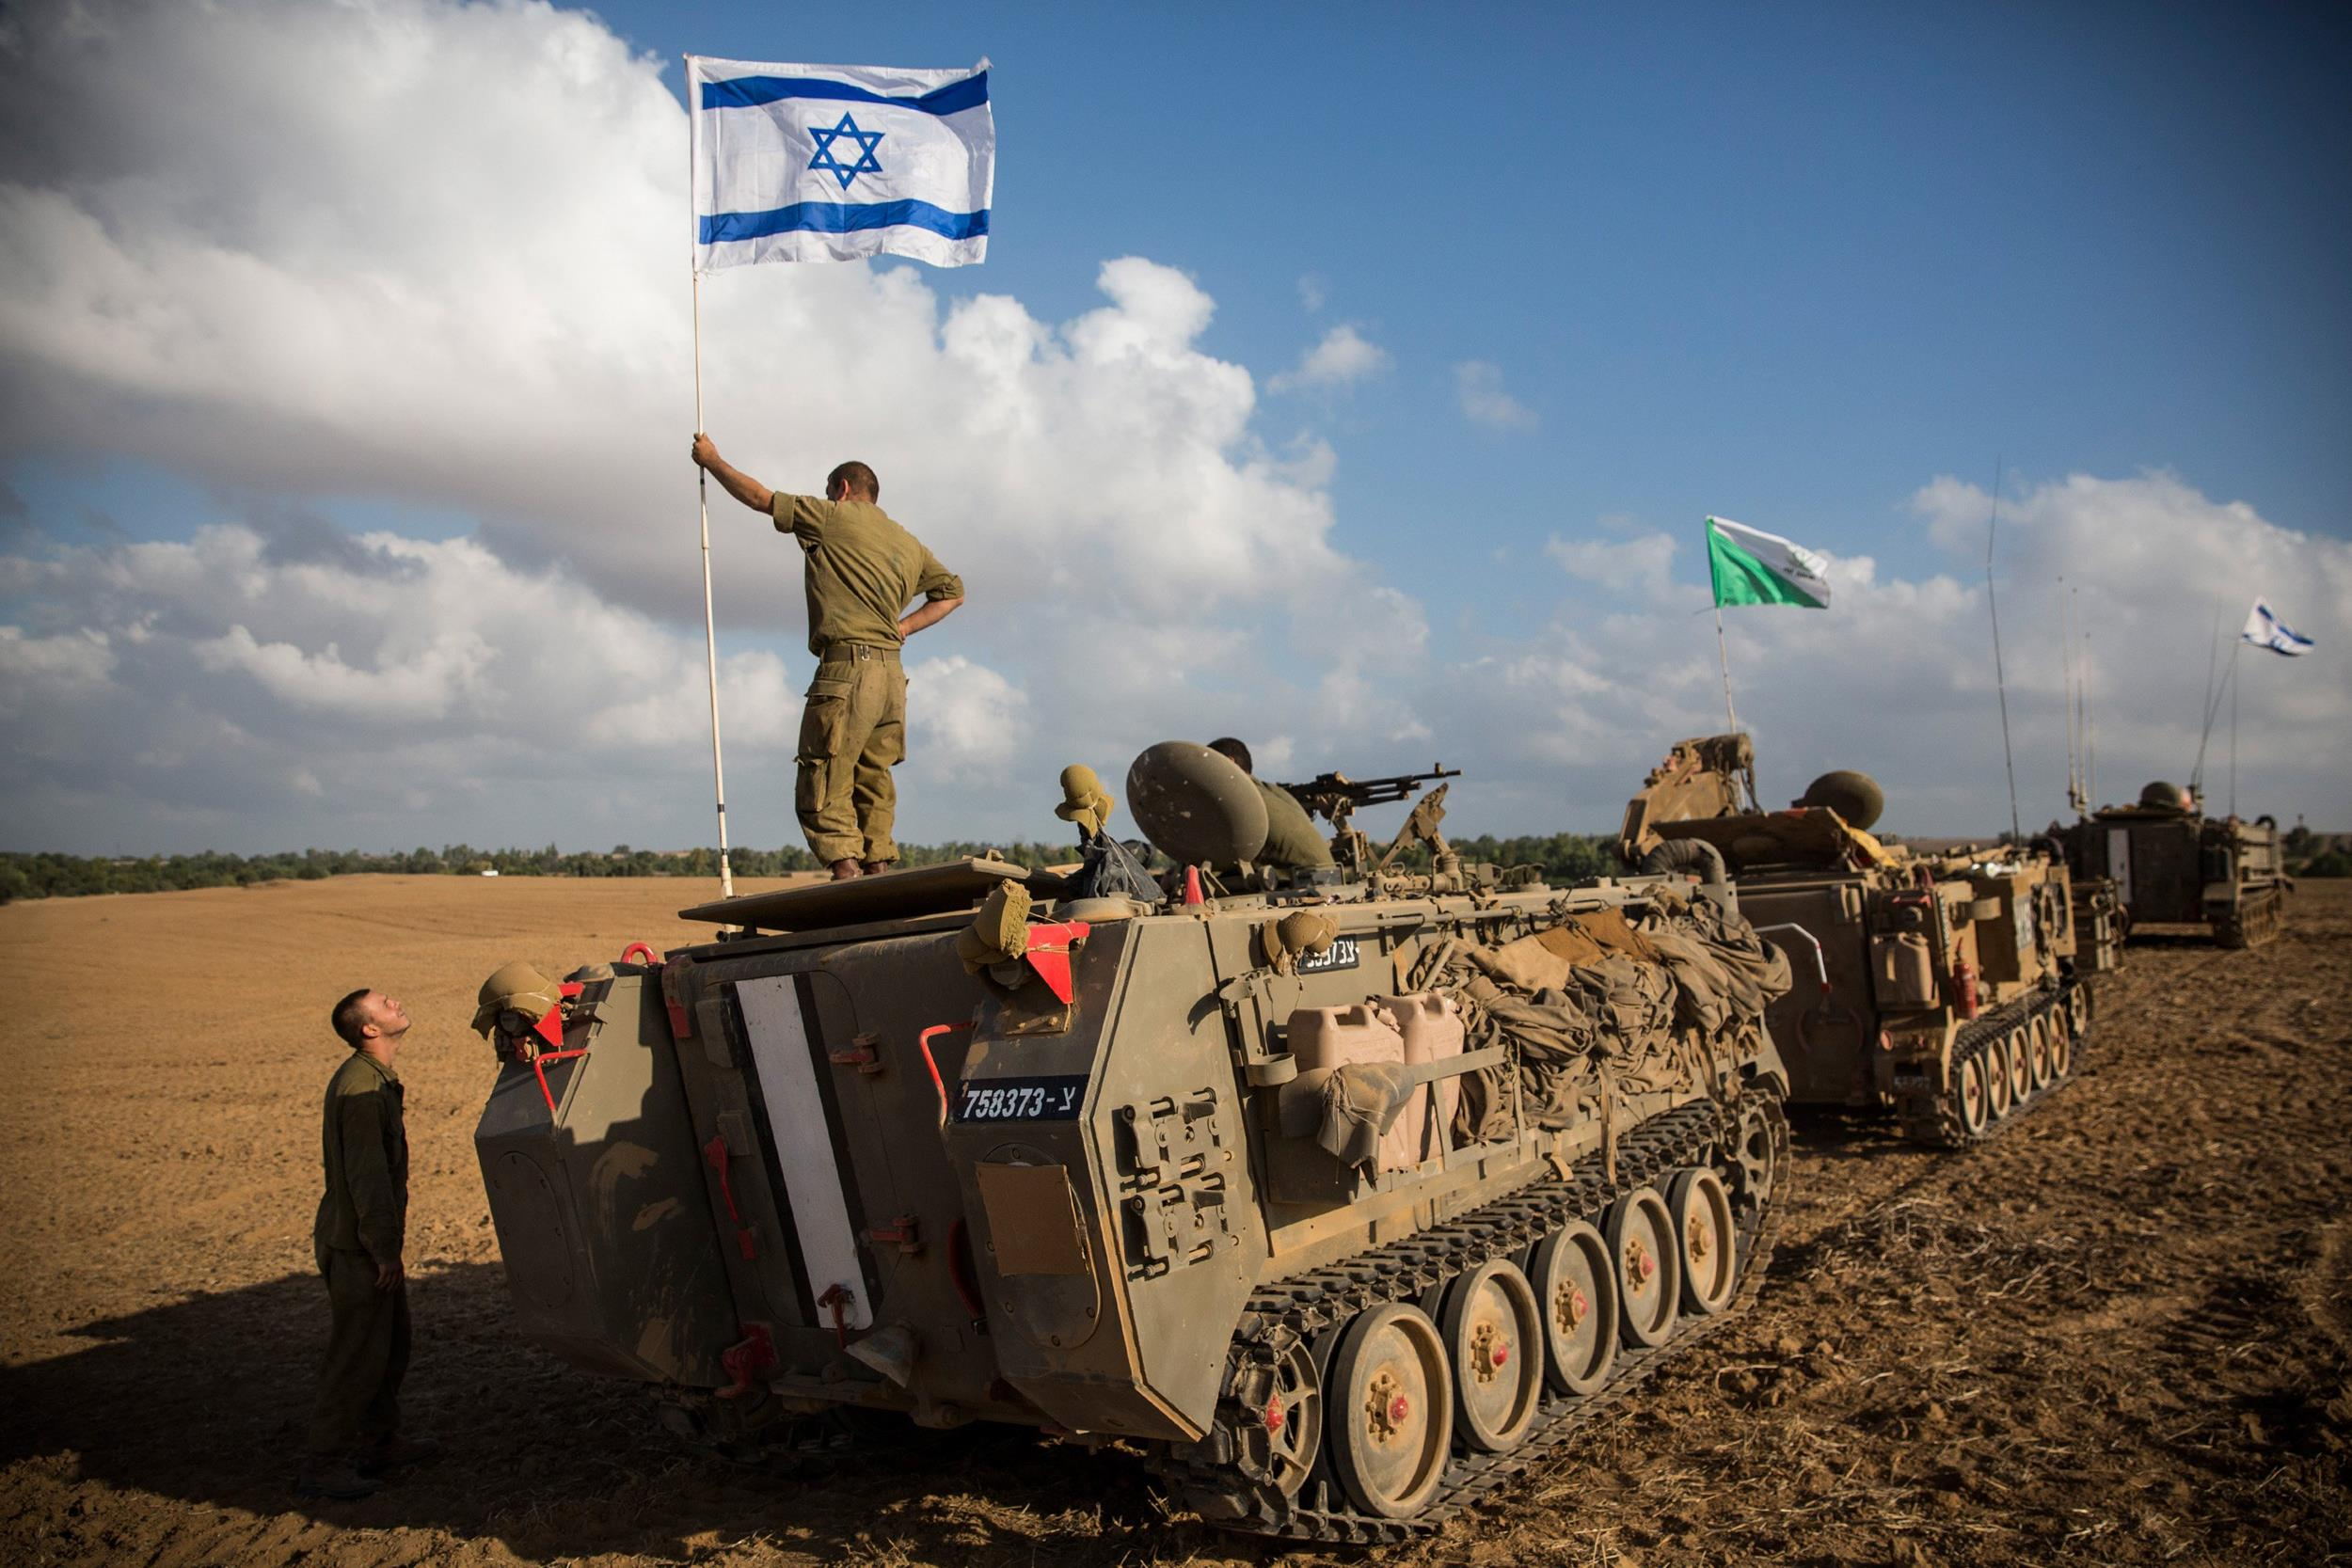 Image: An Israeli soldier stands on top of an armored personnel carrier near the Israeli-Gaza border on July 15, 2014 near Sderot, Israel.